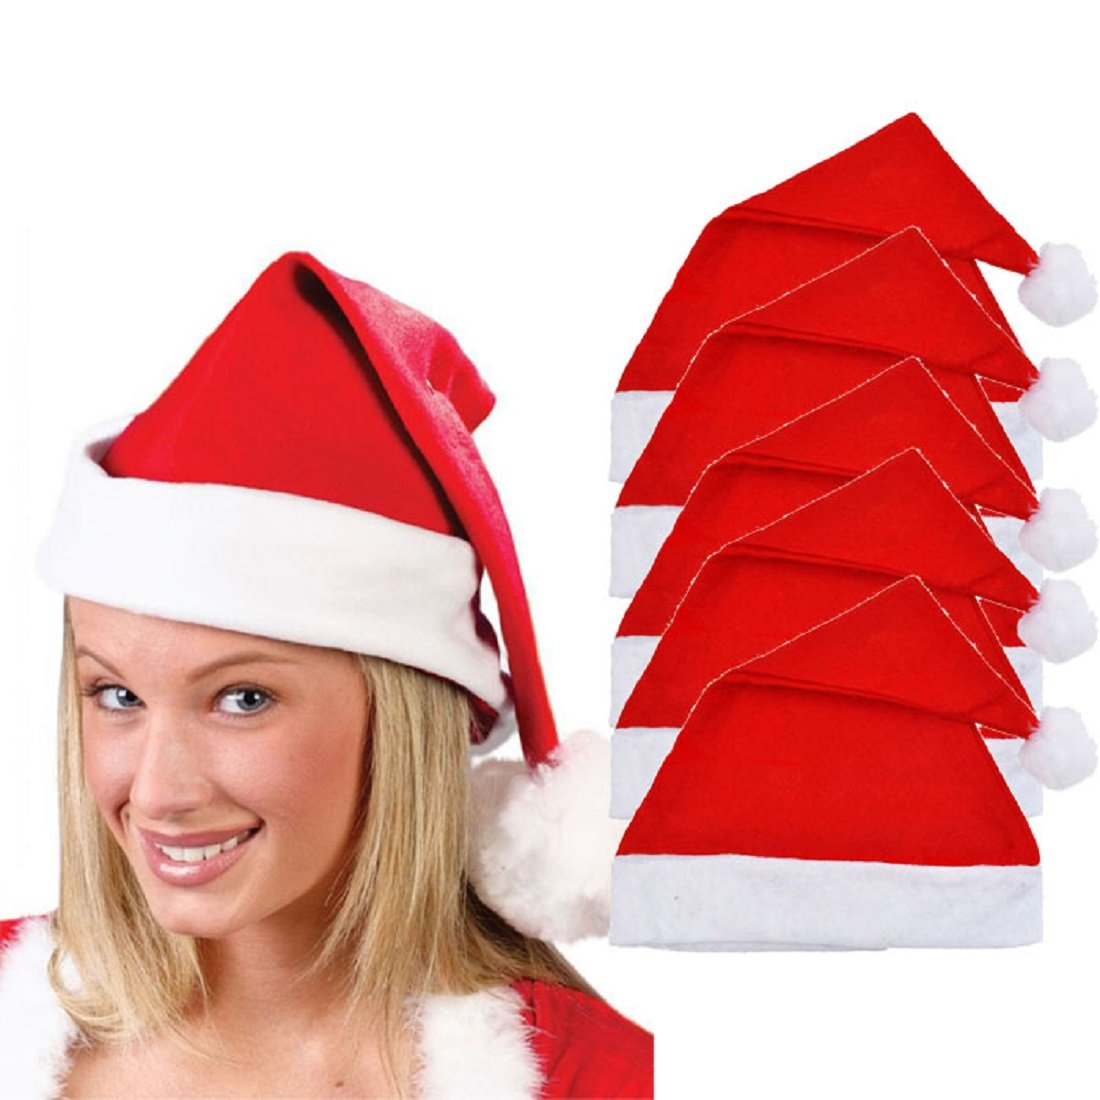 Toraway 5x Adult Unisex Adult Xmas Red Cap Santa Novelty Hat for Christmas Party